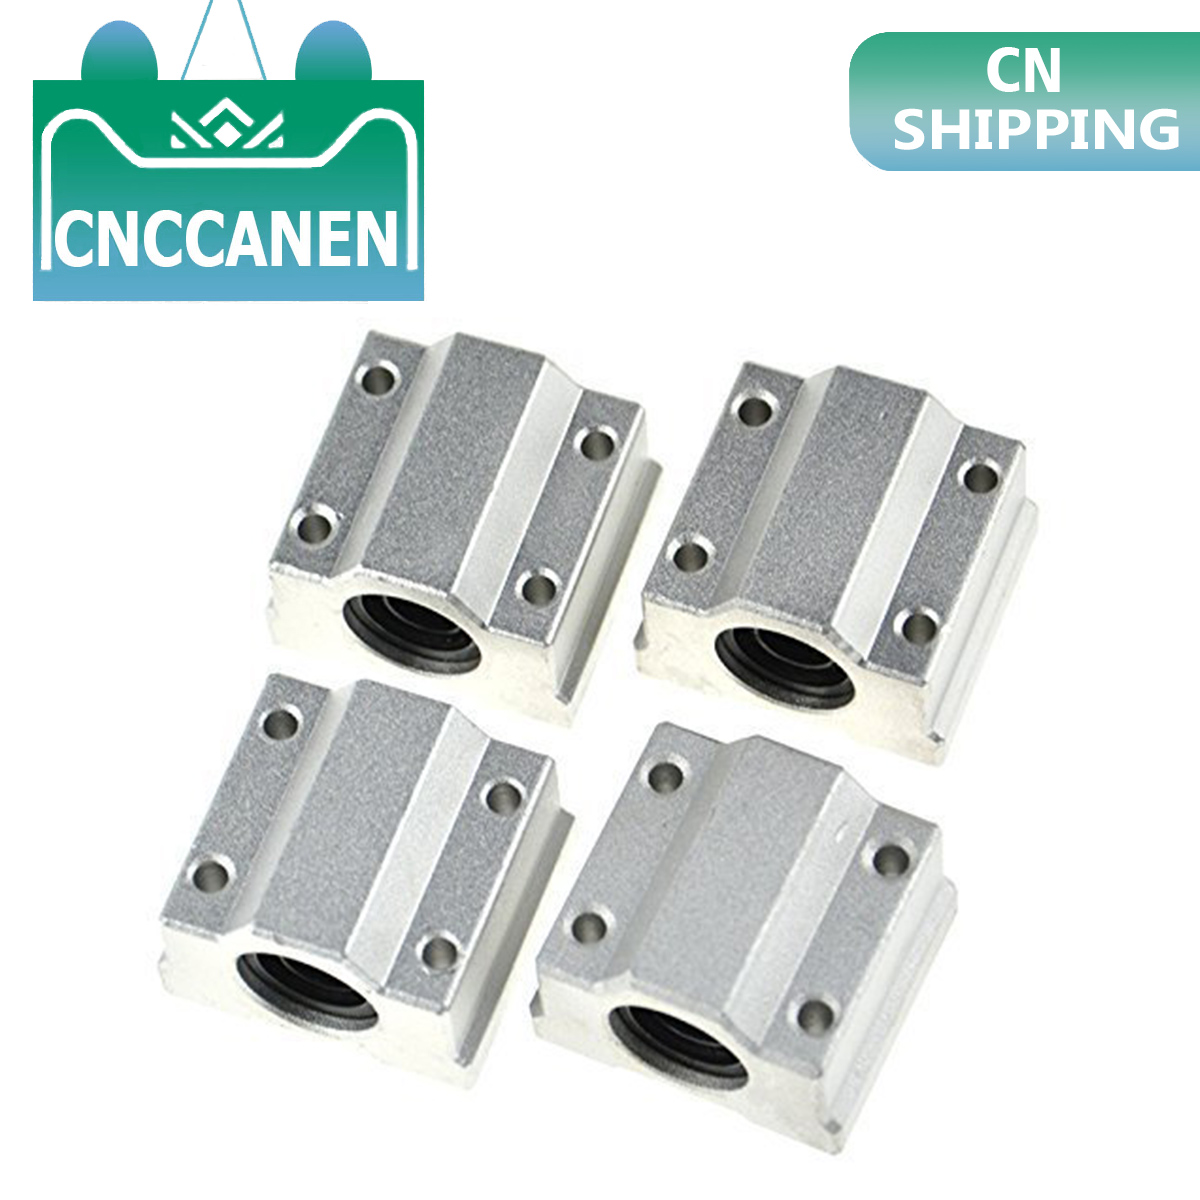 4pcs/lot SCS8UU SCS6UU SCS10UU SCS12UU SCS8LUU SCS10LUU SCS16UU 8mm Linear Ball Bearing Block CNC Router 3D Printer Parts